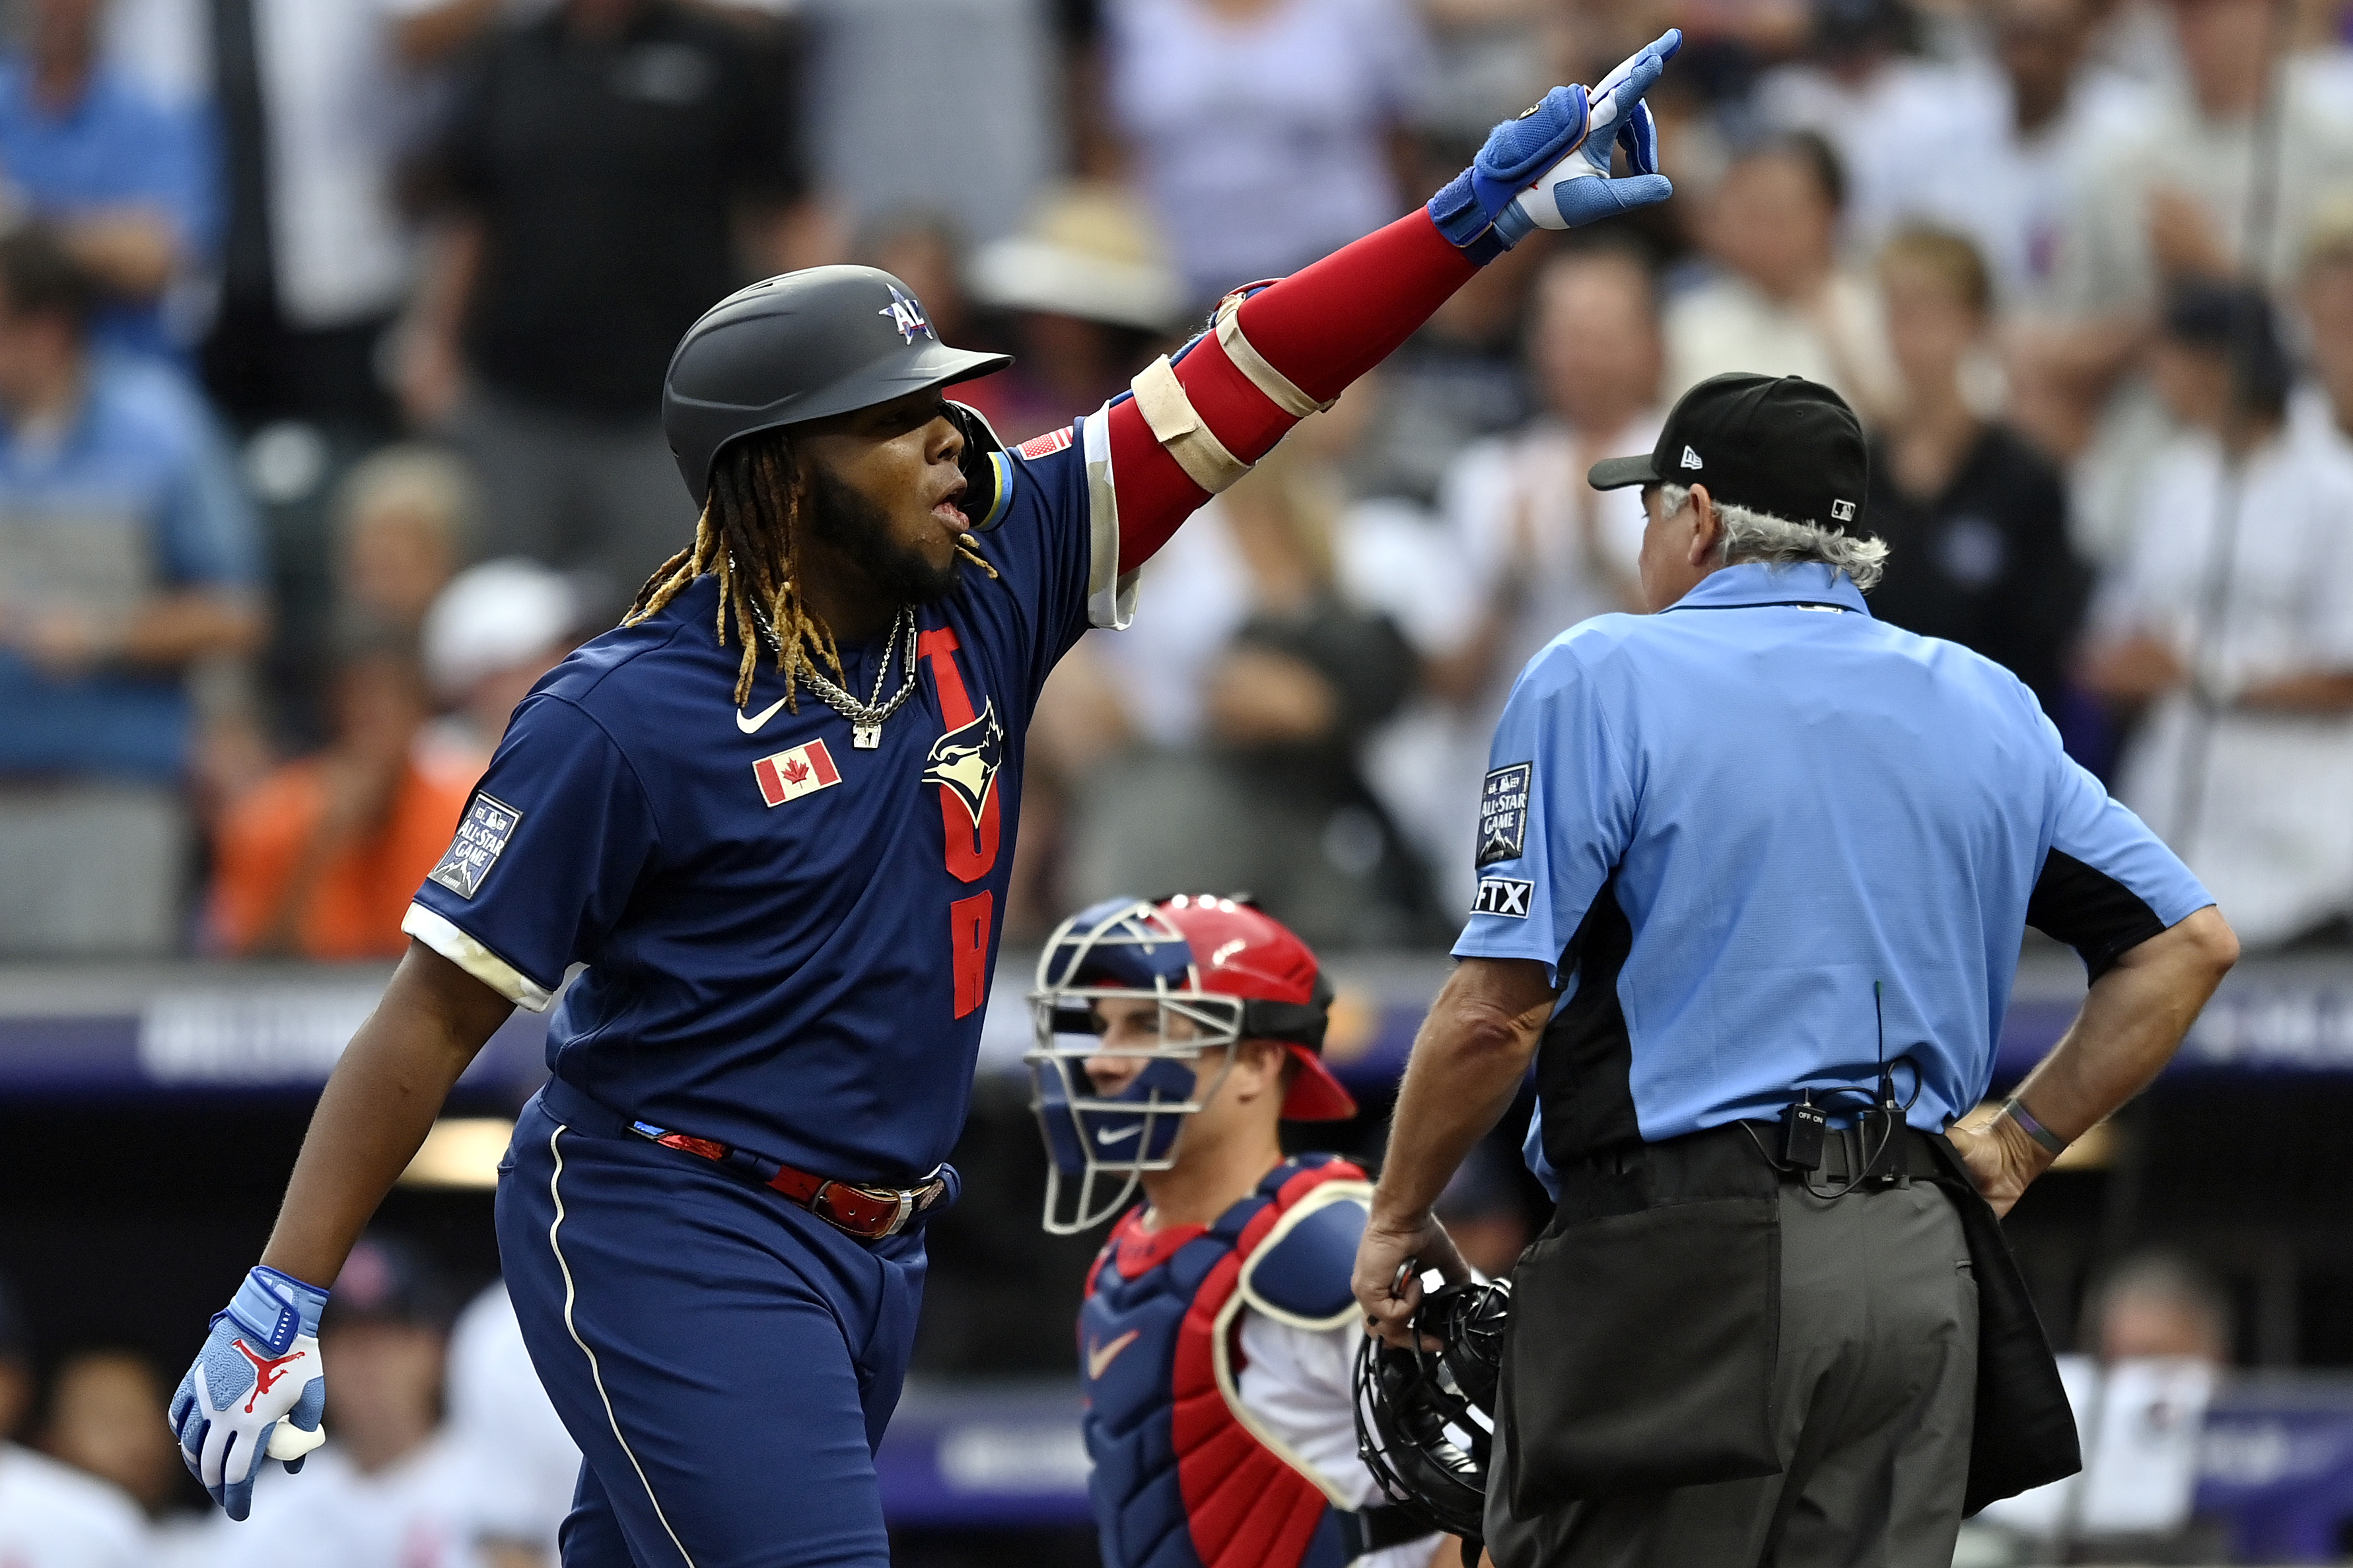 Vladimir Guerrero Jr. #27 of the Toronto Blue Jays celebrates after hitting a home run in the third inning during the 91st MLB All-Star Game at Coors Field on July 13, 2021 in Denver, Colorado.